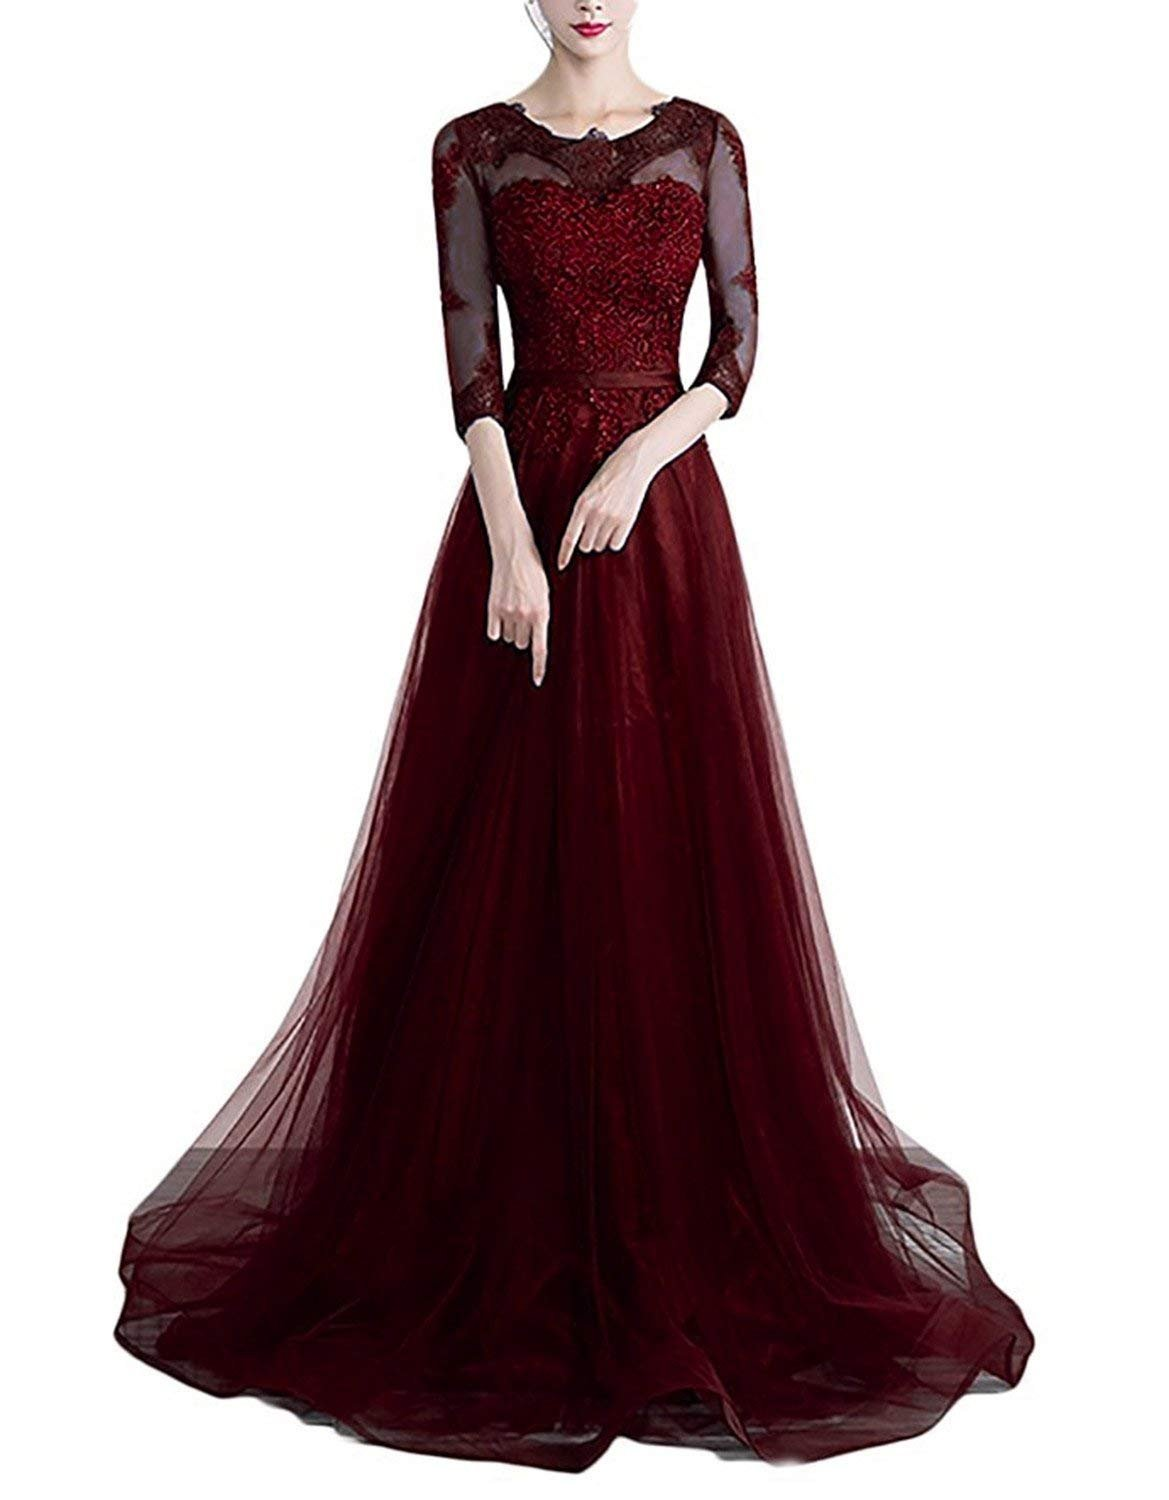 457970b51c3 tutu.vivi Women s A-Line 3 4 Sleeves Lace Bridesmaid Dresses Tulle Long Formal  Evening Gowns Burgundy Size18W